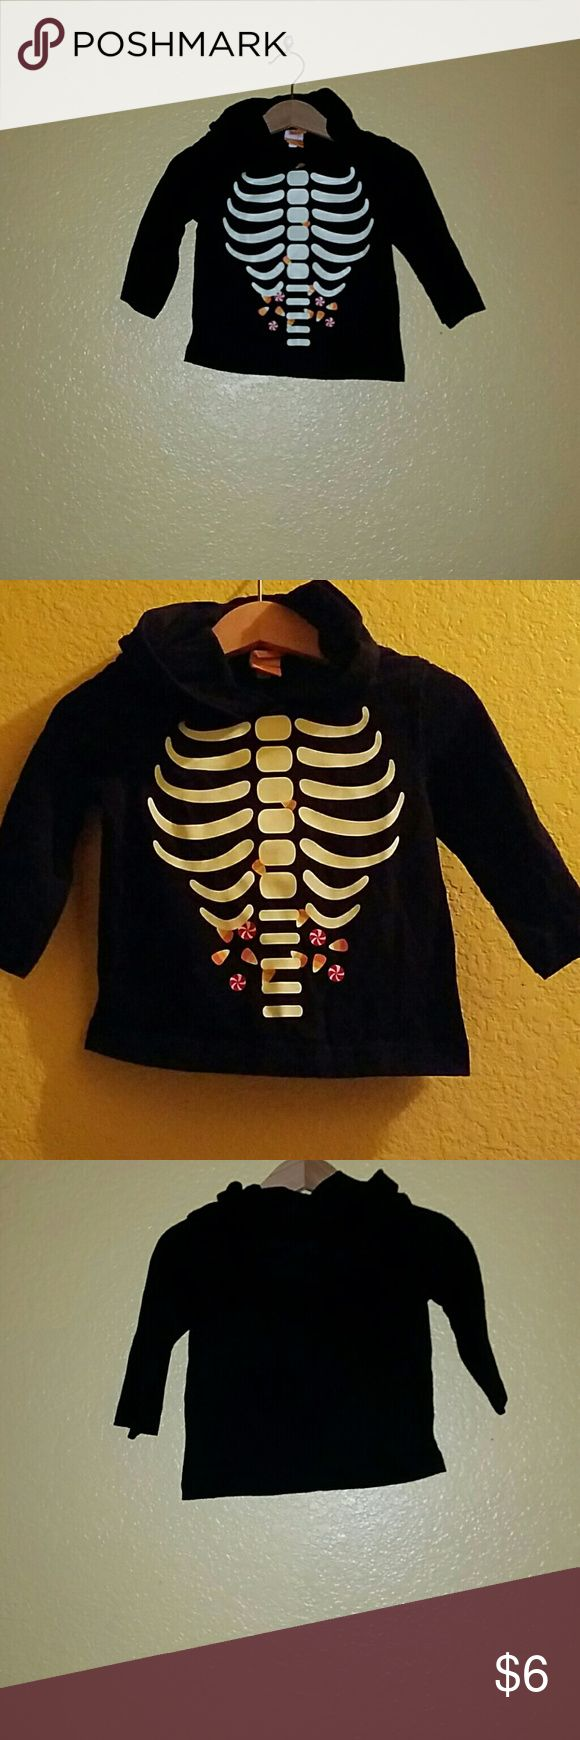 Halloween Hoodie For Boys. Nice hoodie in great condition. Great for cold Halloween night. IT GLOWS IN THE DARK. Shirts & Tops Sweatshirts & Hoodies